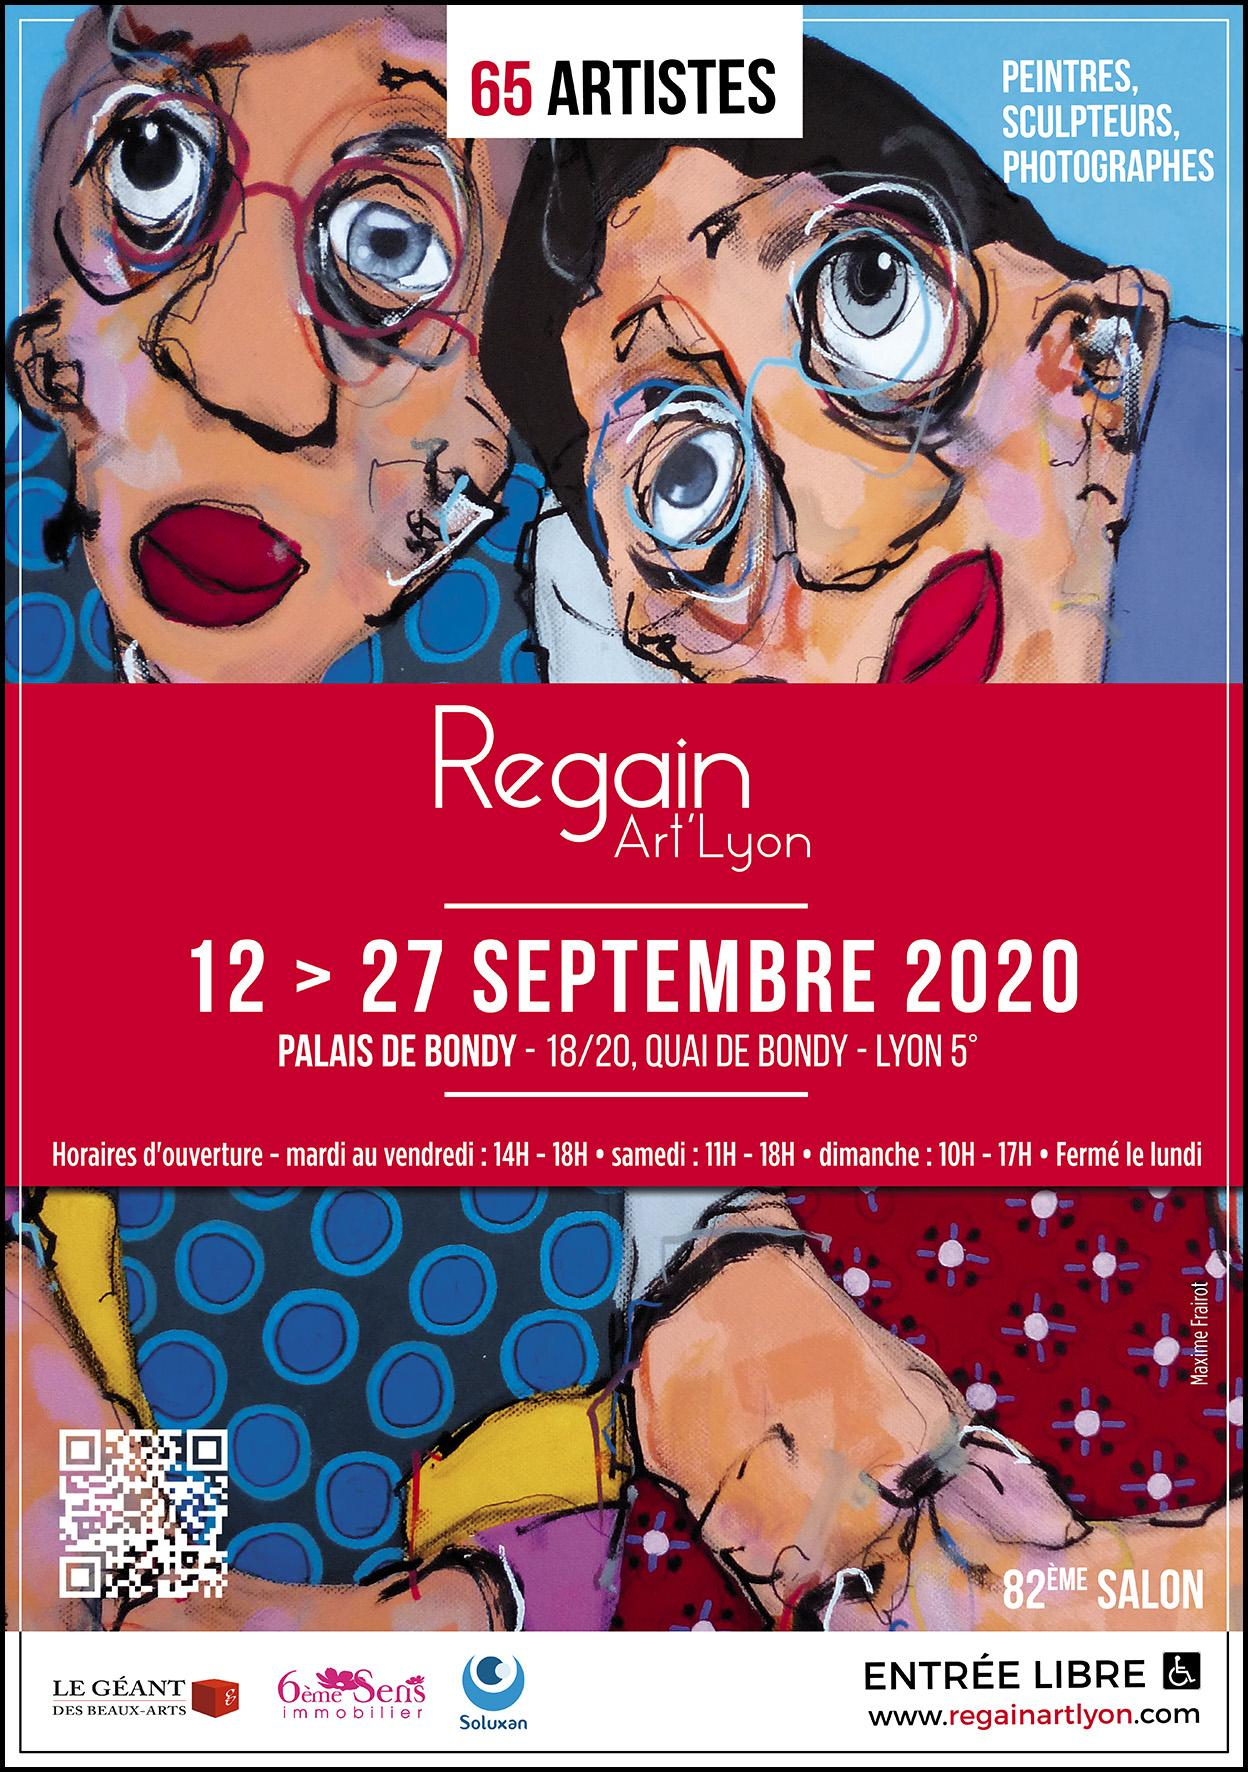 AFFICHE REGAIN ART'LYON 2020 A TELECHARGER